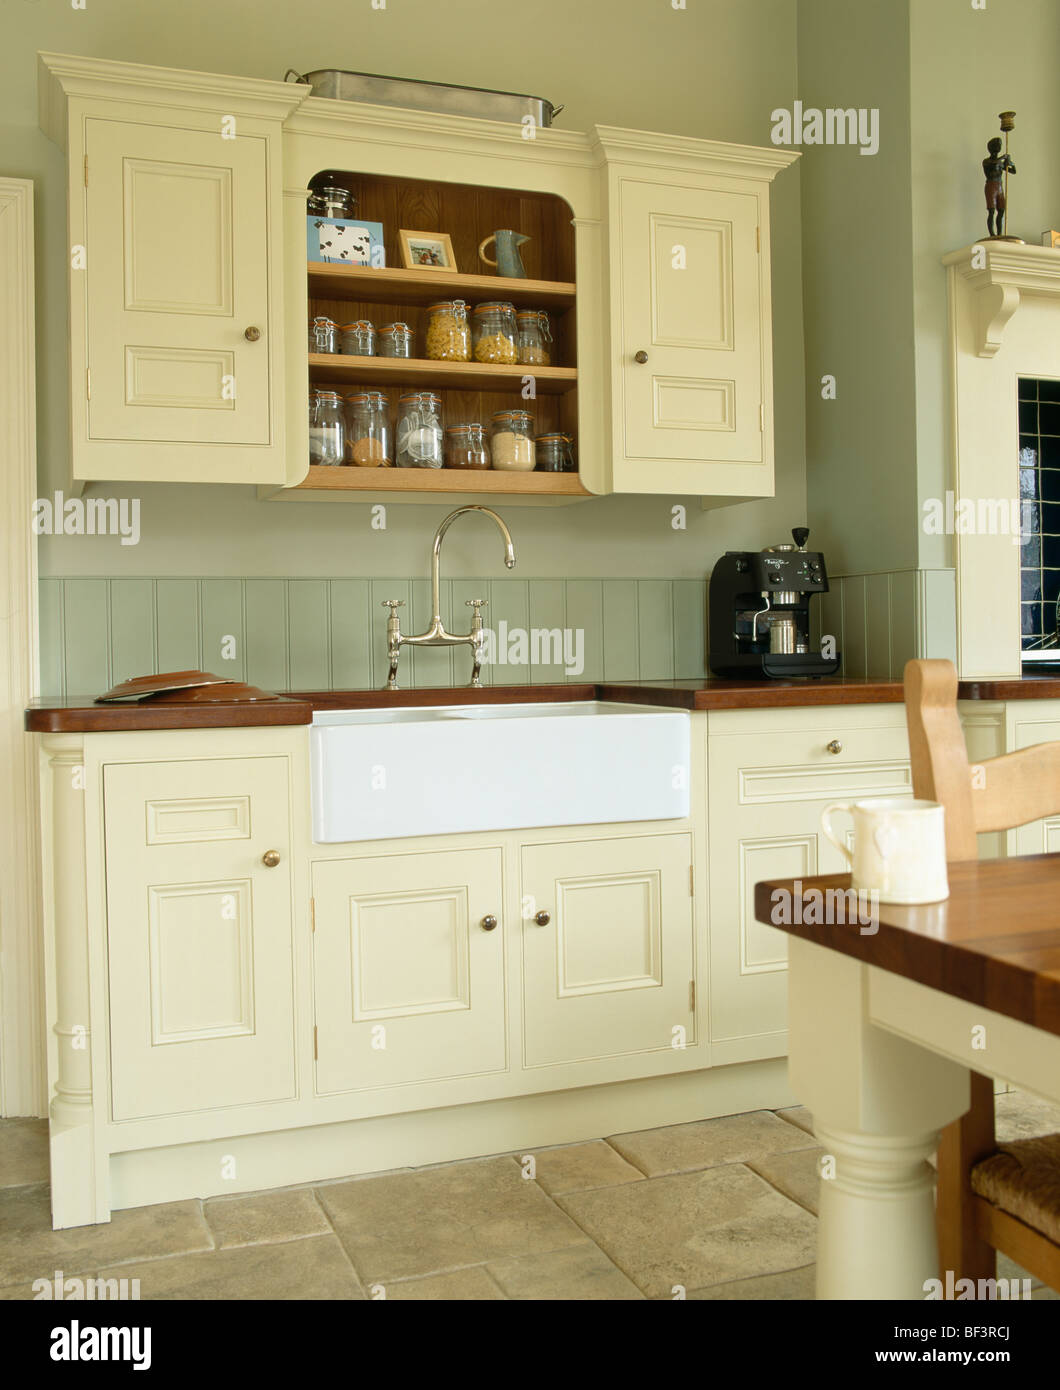 Stock Photo   White Belfast Sink In Cream Fitted Unit Below Fitted Wall  Cupboard In Traditional Country Kitchen Painted In Farrow+Ball Paint